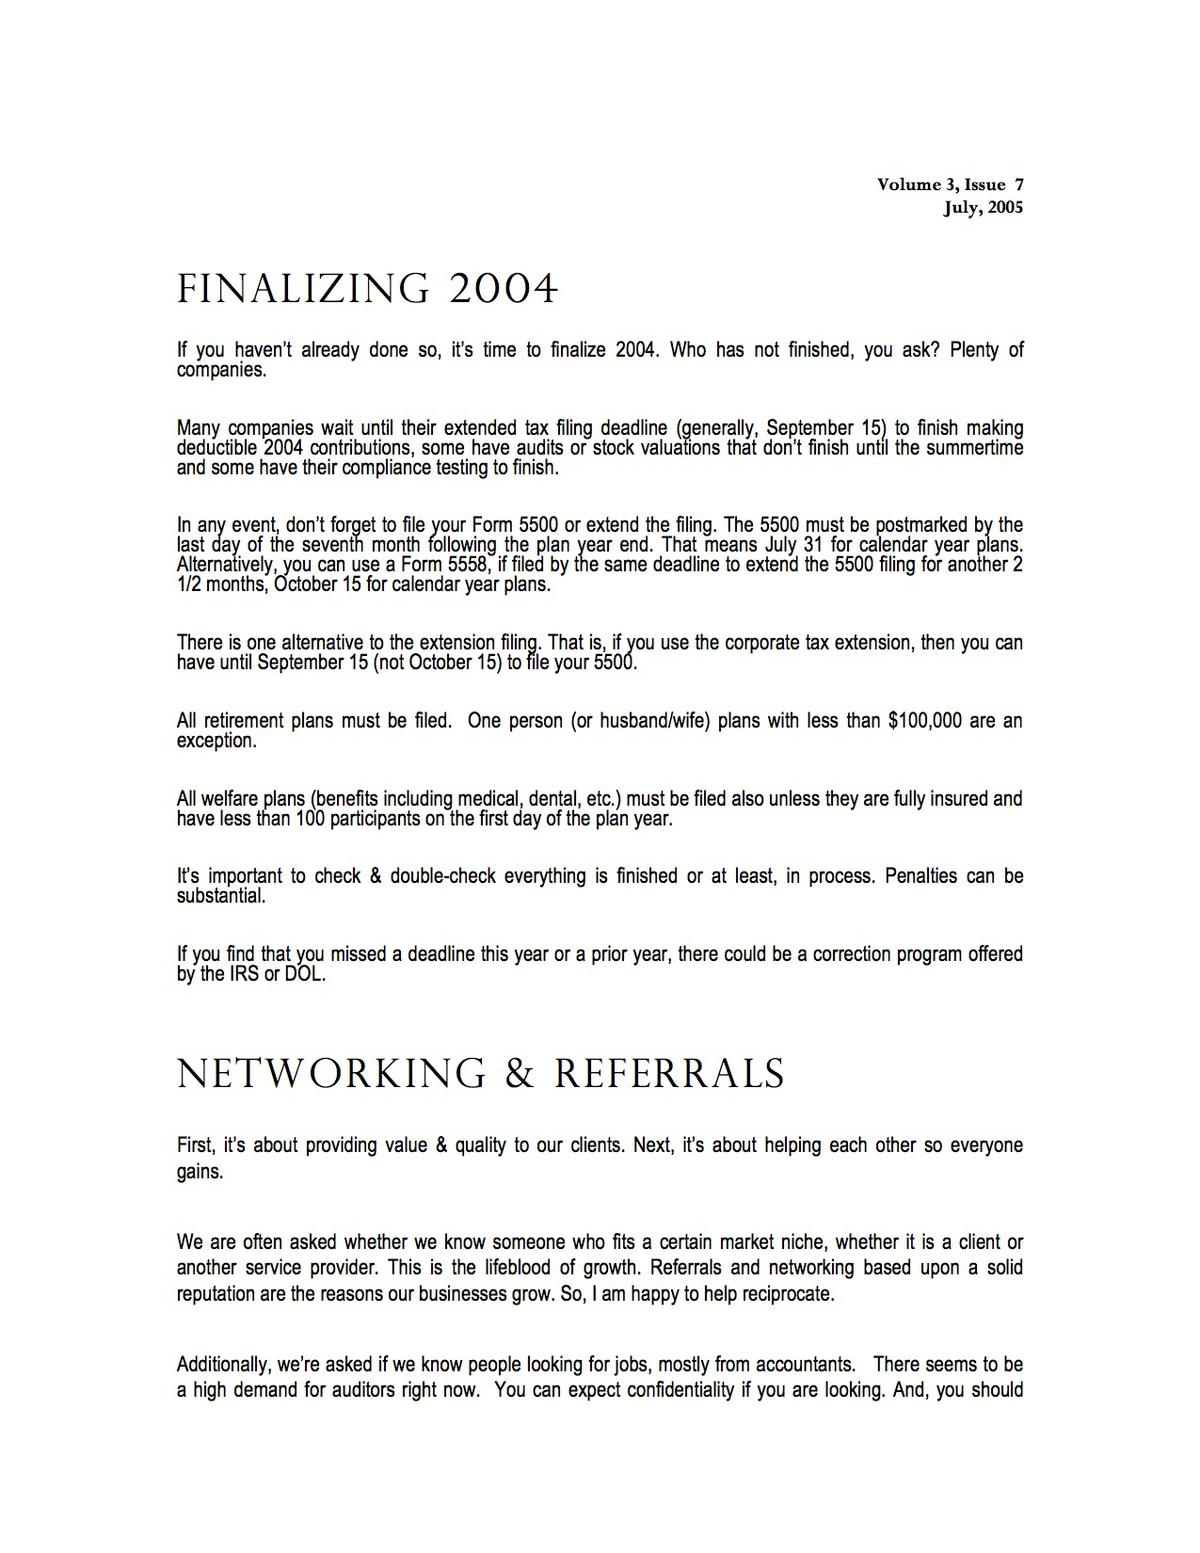 Your Retirement Specialist - Finalizing 2004